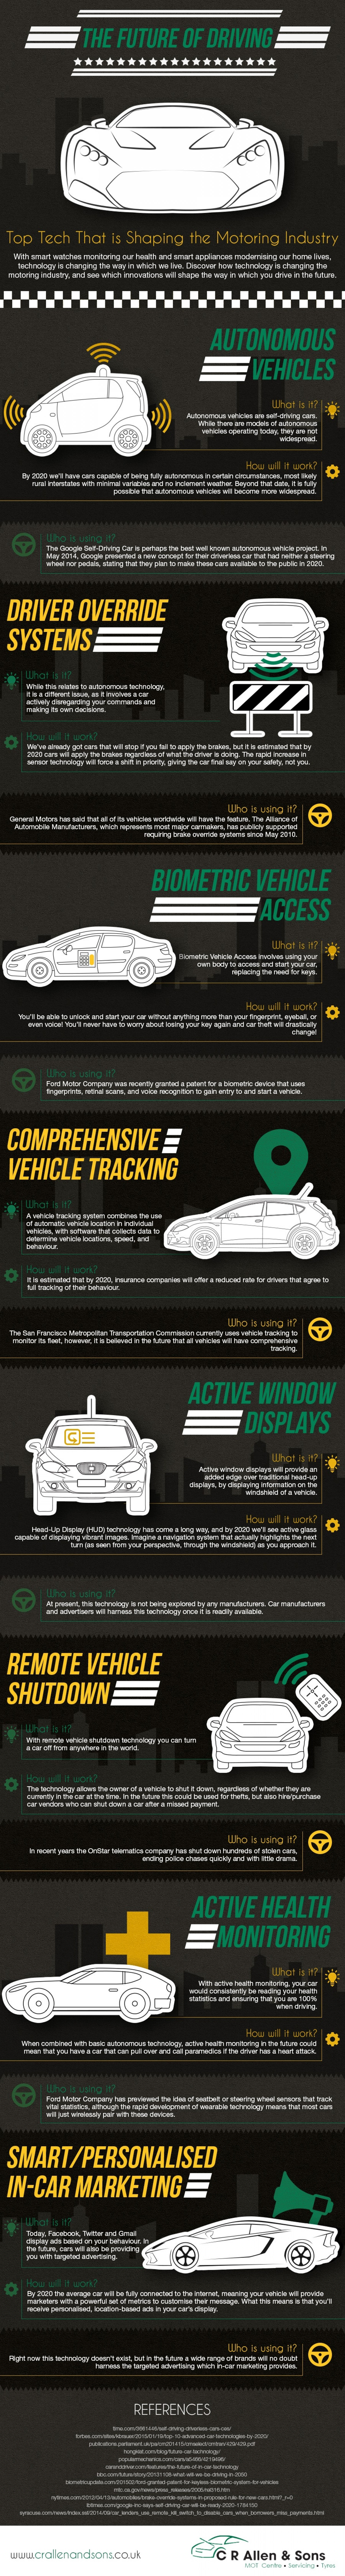 The Future of Driving - Top Tech Shaping Motoring Industry